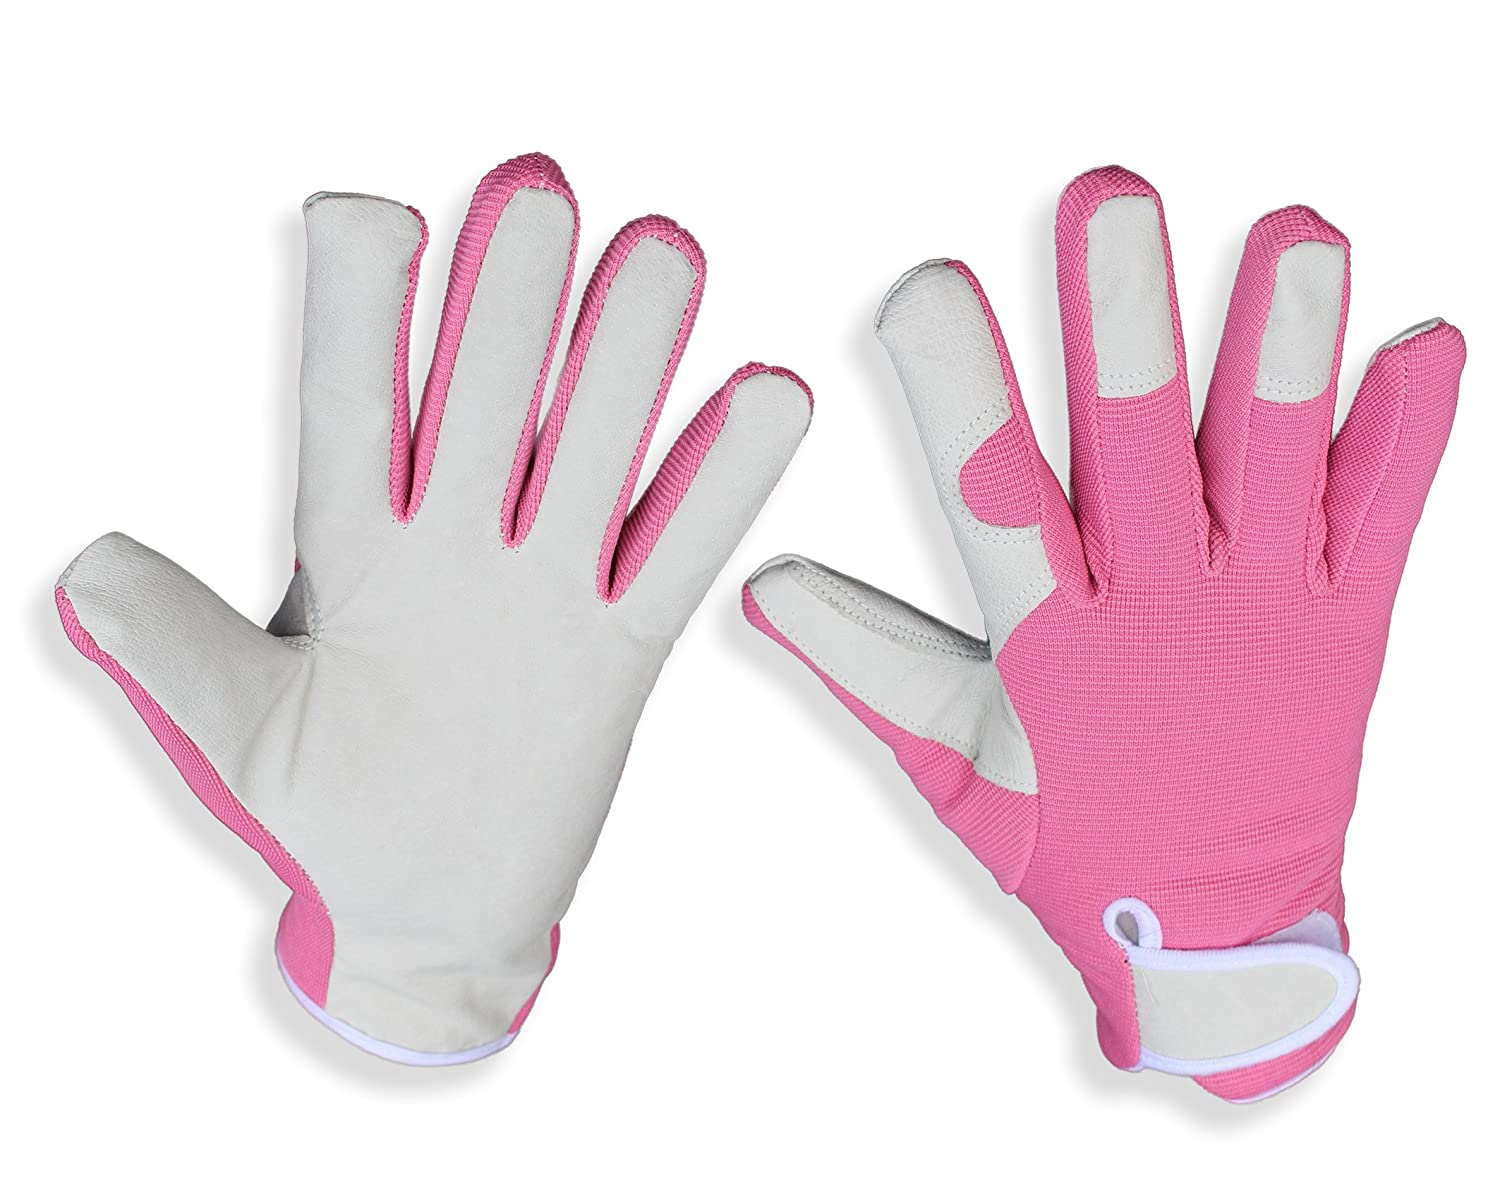 Elegant, Slim Fit Leather Ladies Gardening Gloves (Pink). Perfect for Garden and House - Even Safe for Pruning Roses. Perfect gardening gifts for women (Small) MIC